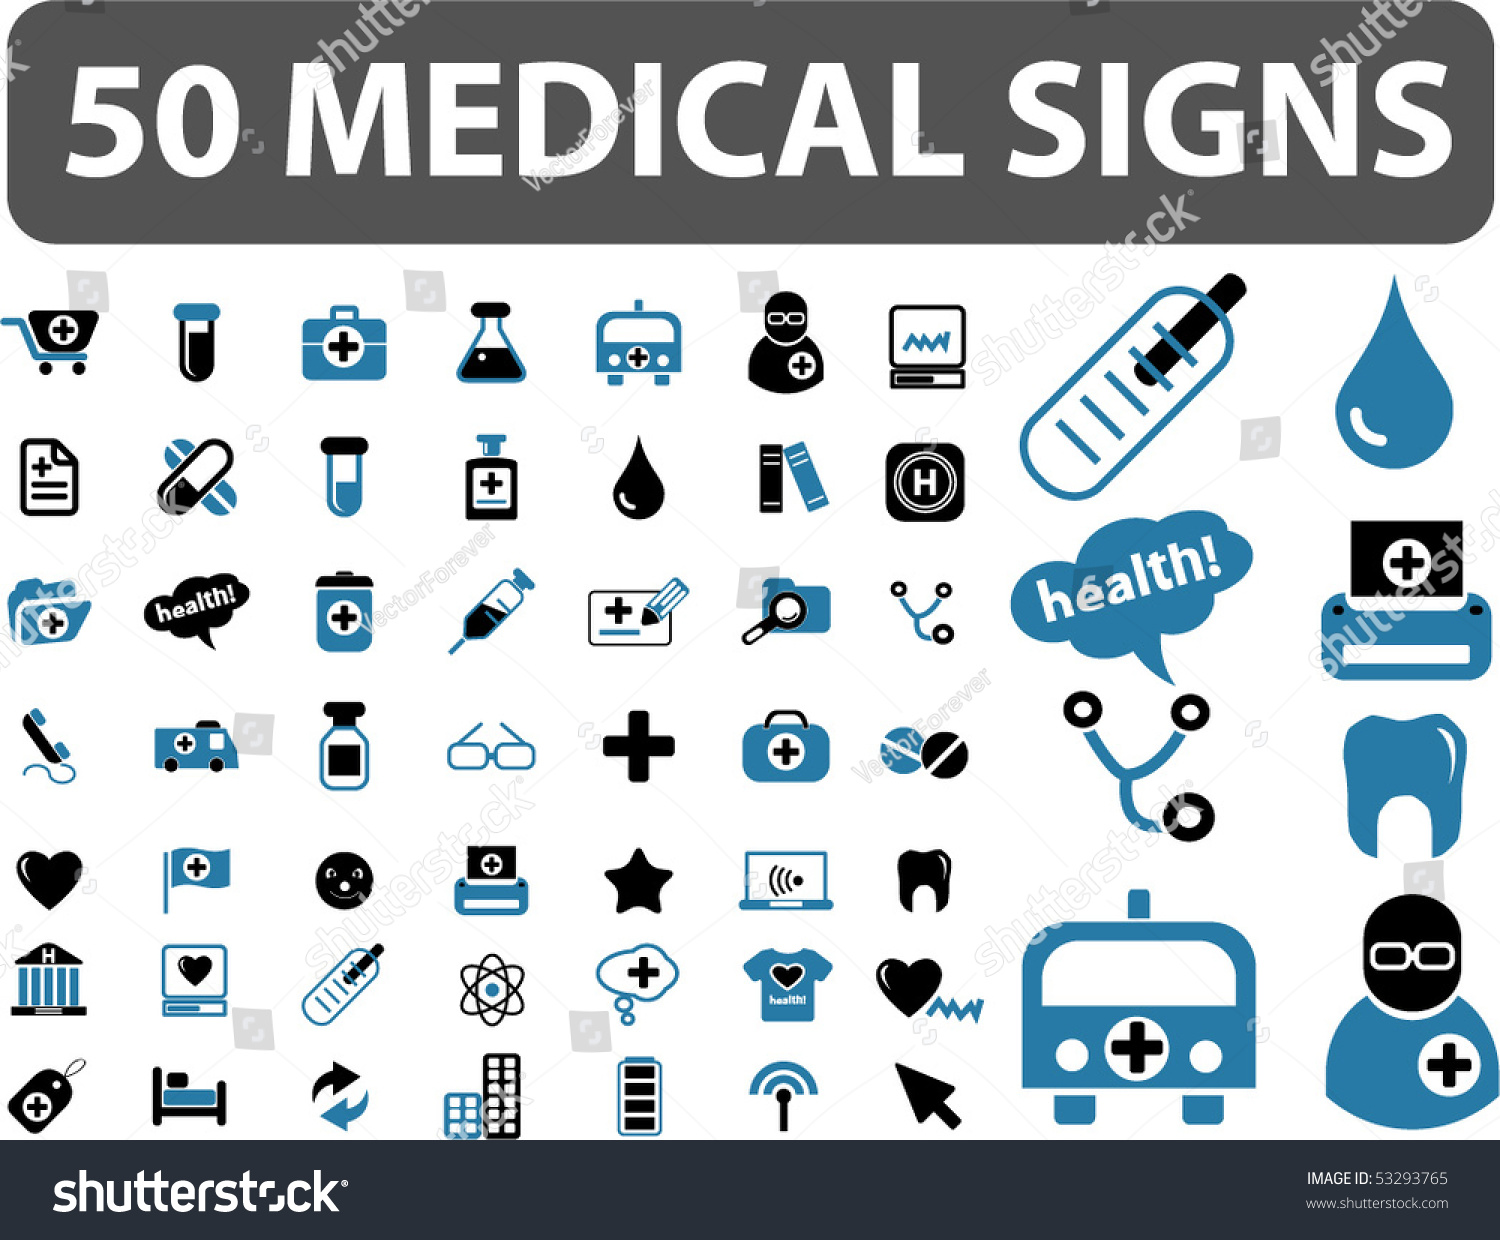 50 Medical Health Care Signs Vector Stock Vector